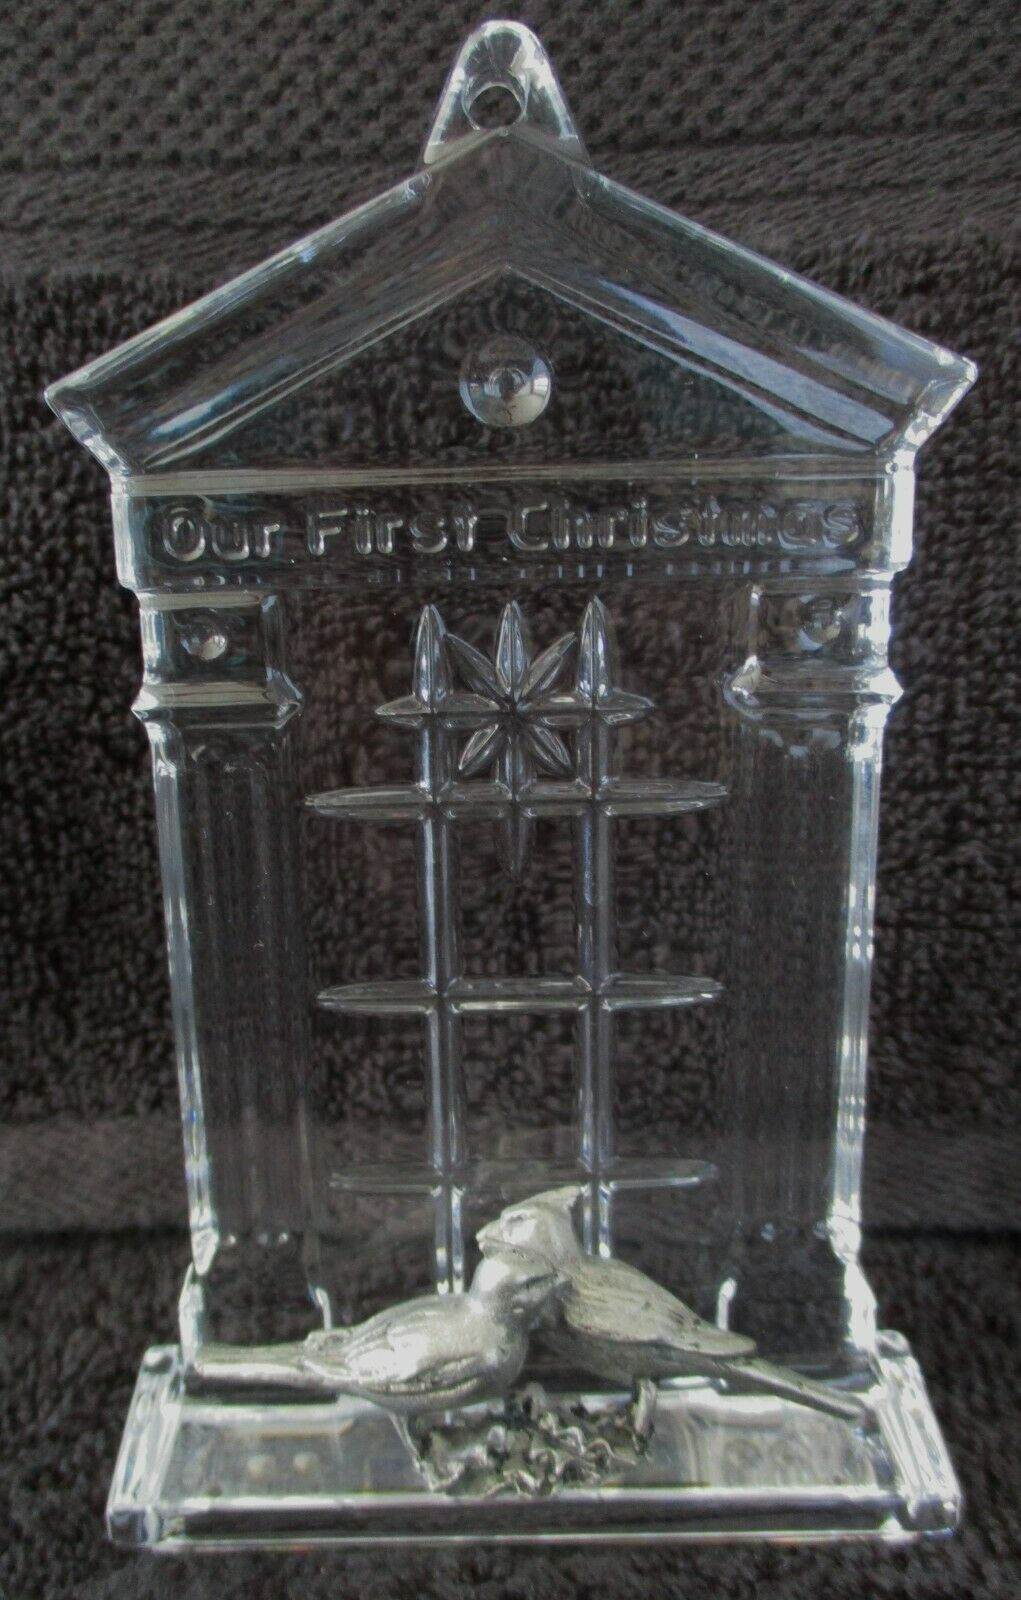 """Waterford Crystal Christmas Ornament """"Our First Christmas"""" 2005 - $29.70"""